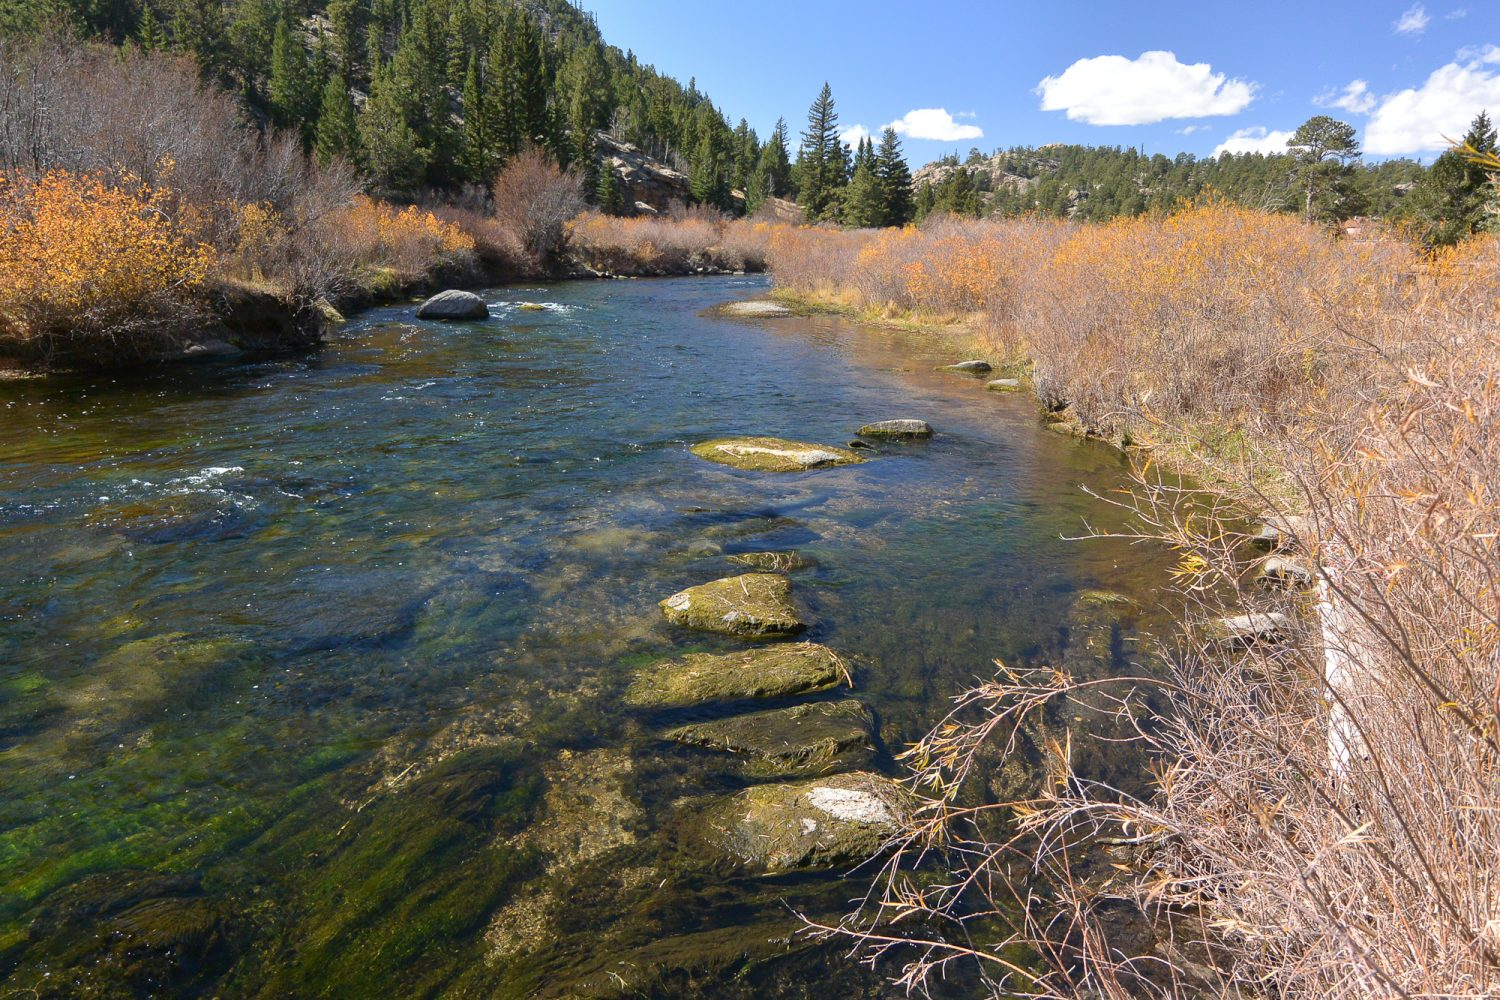 Upper South Platte River with J-Hook rock structure